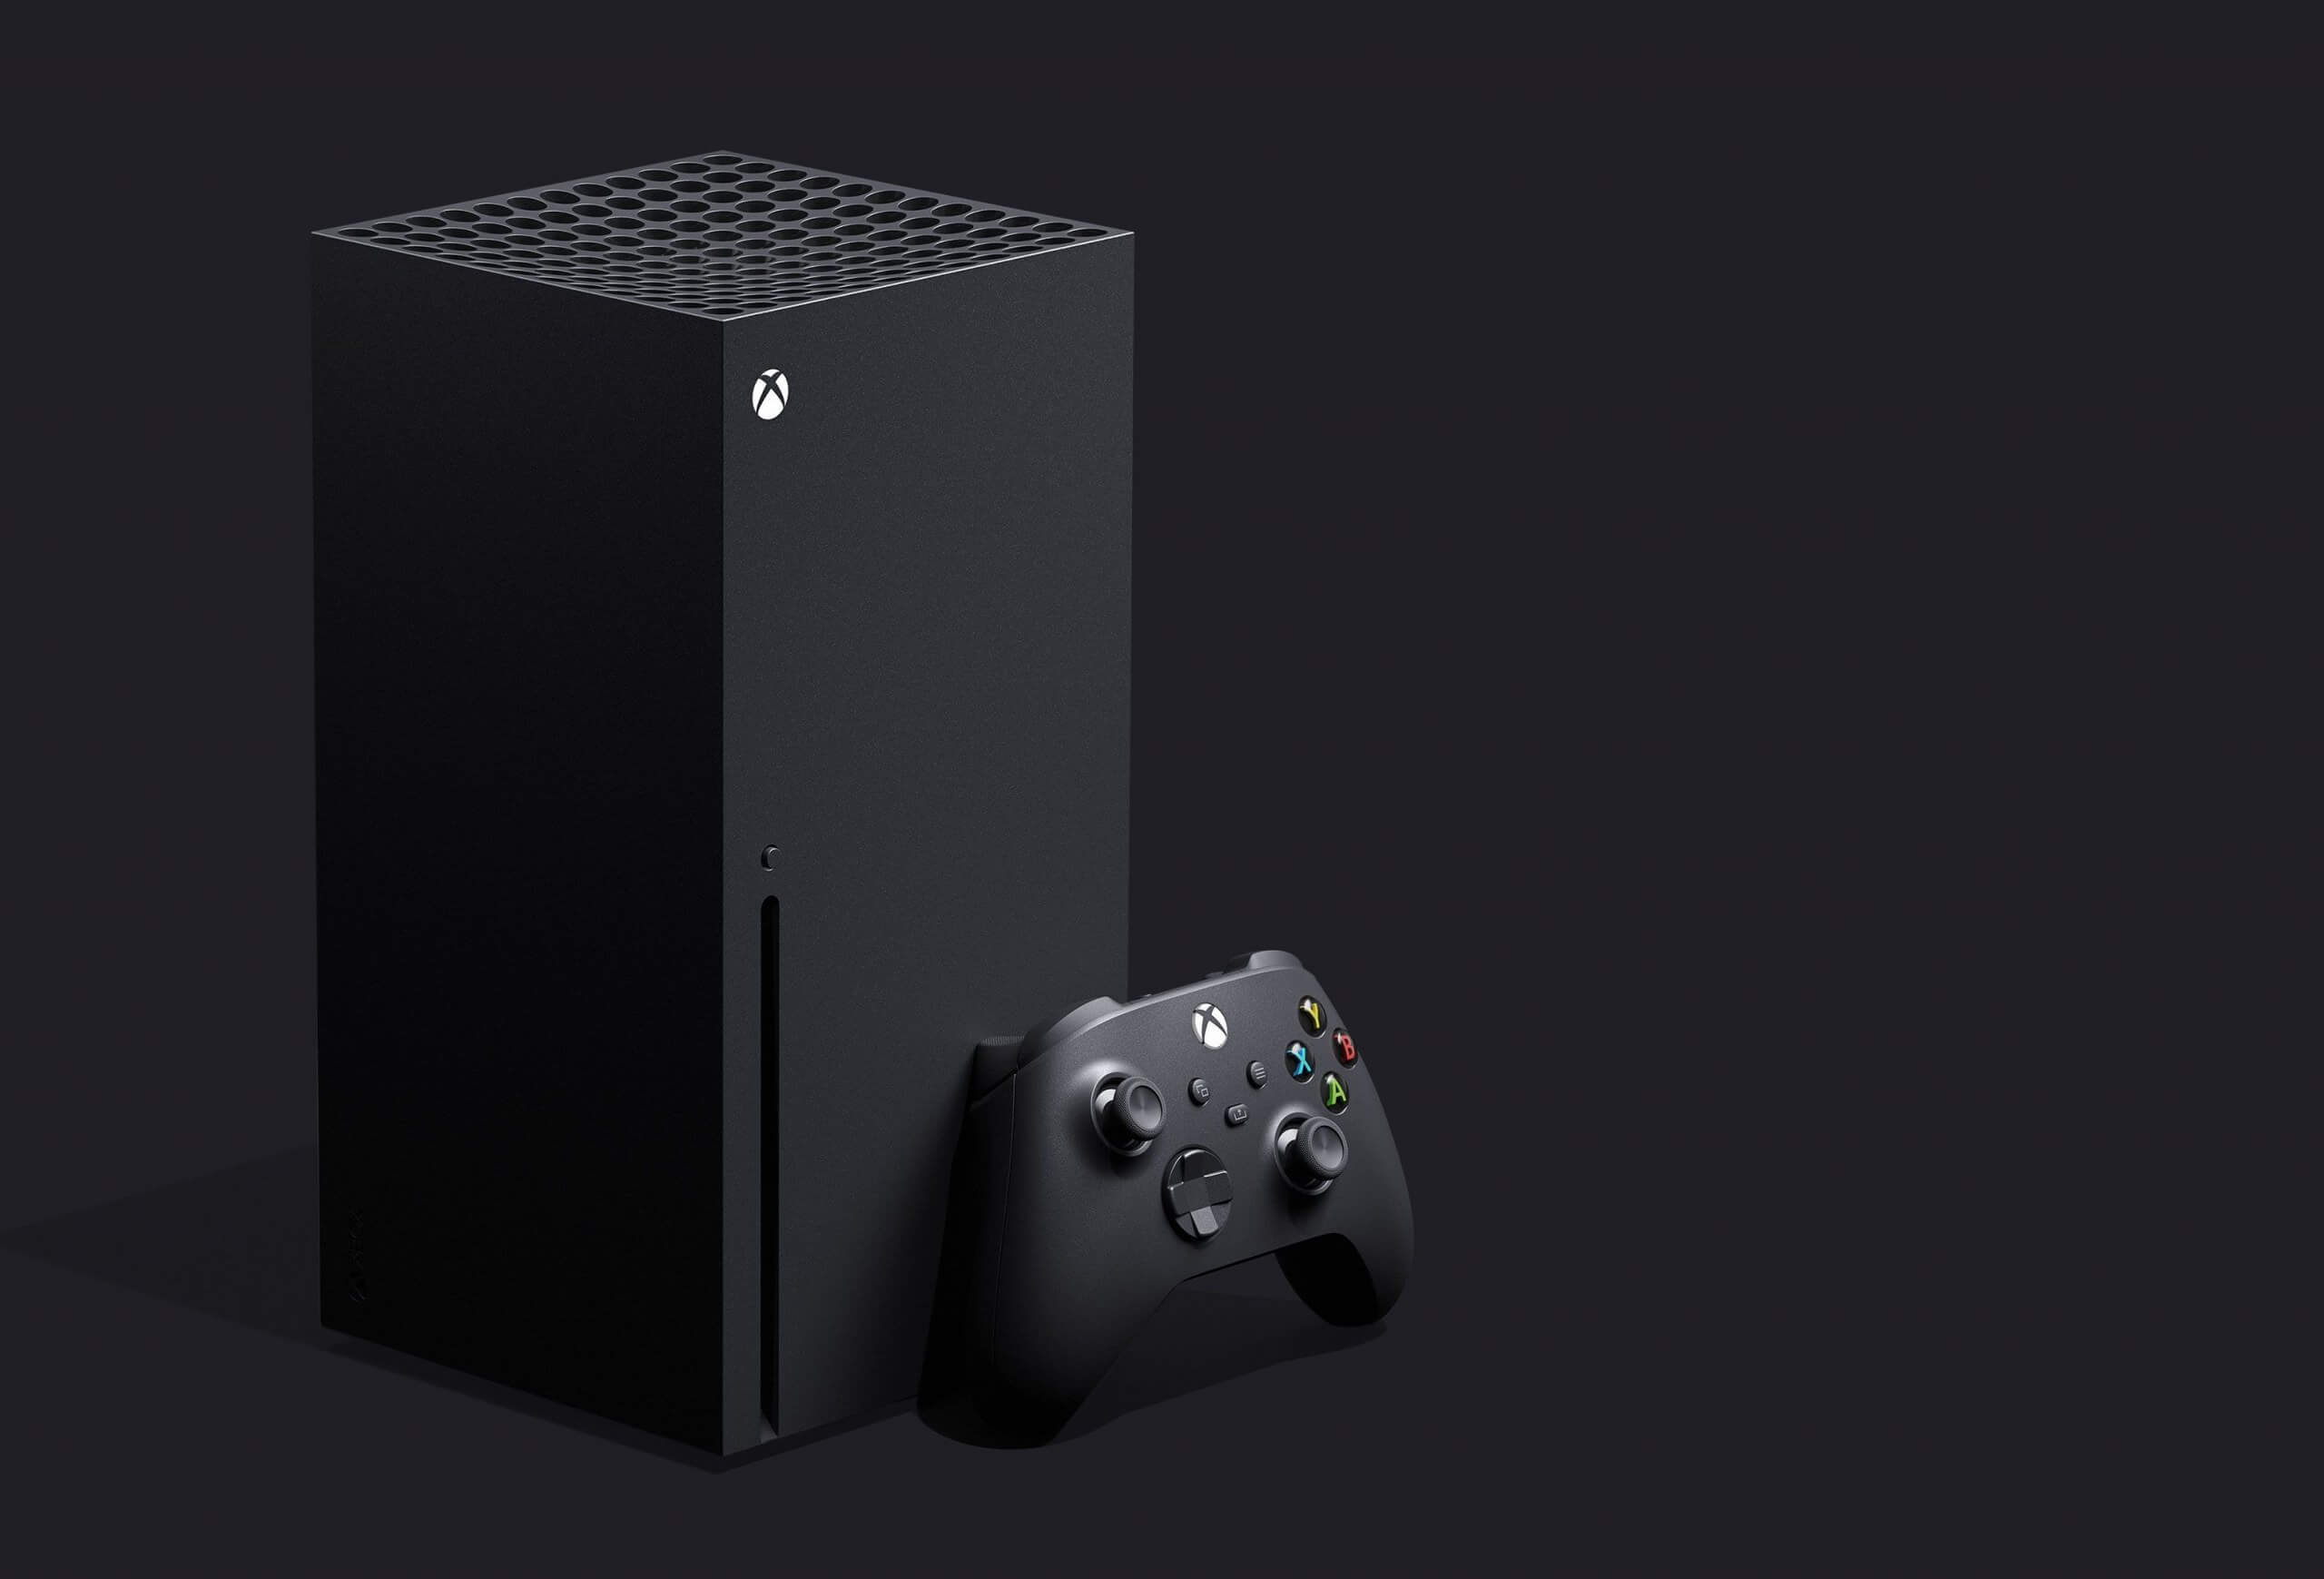 Xbox Series X / S are the beginning of the end for console generations - editorial